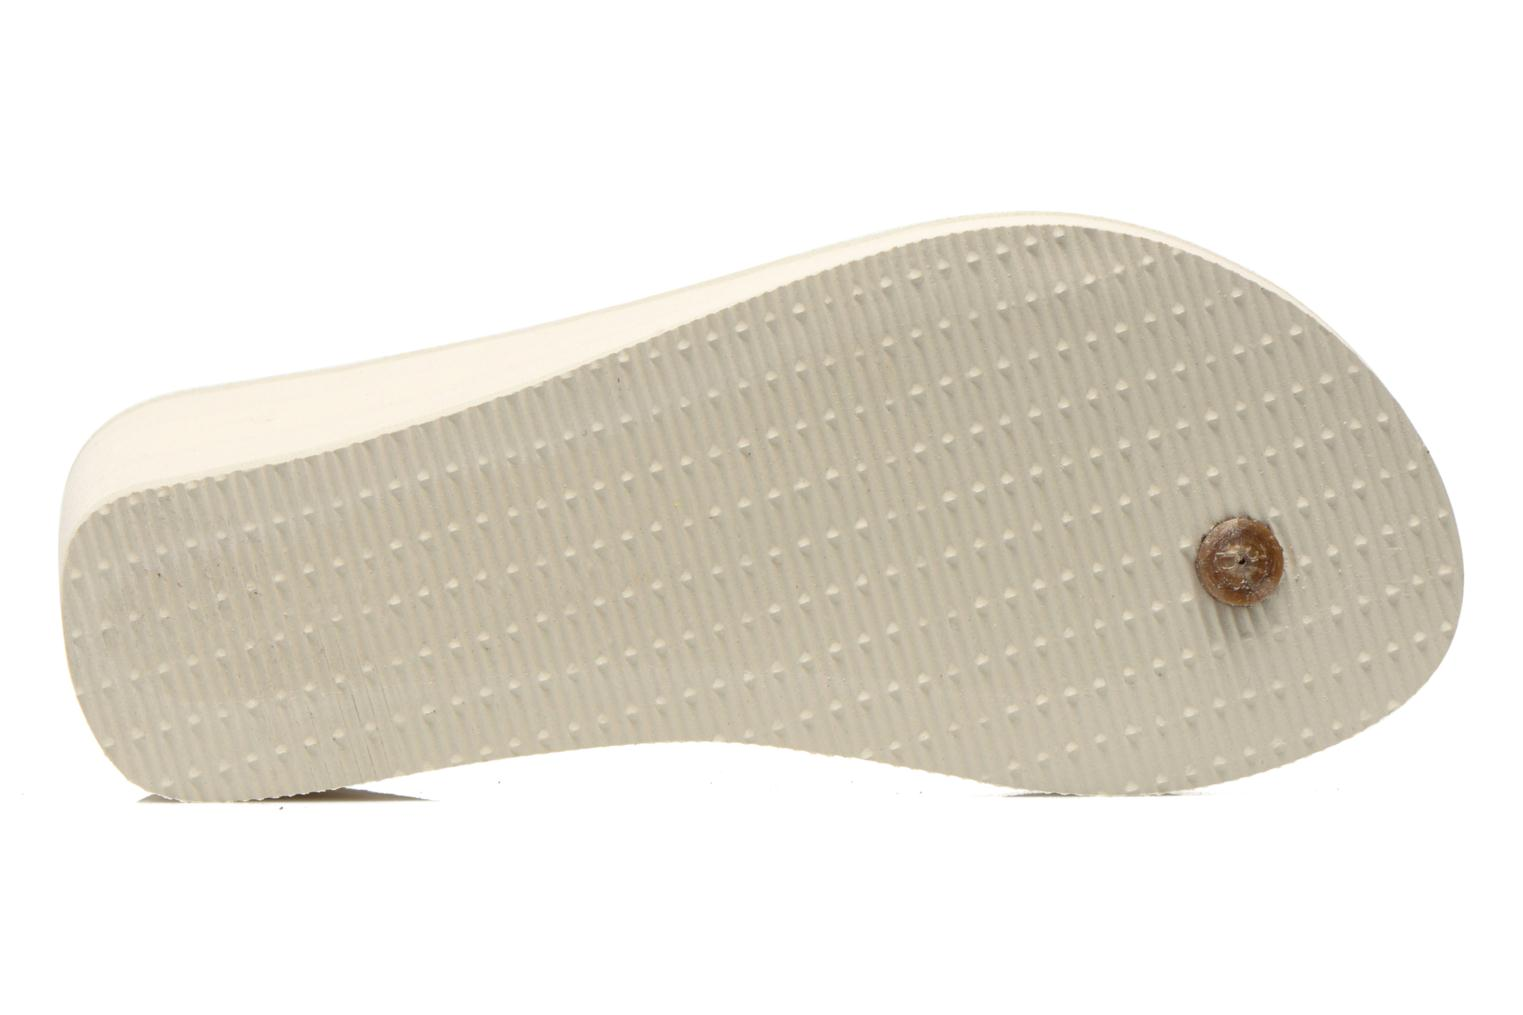 Slippers Havaianas High Fashion Goud en brons boven